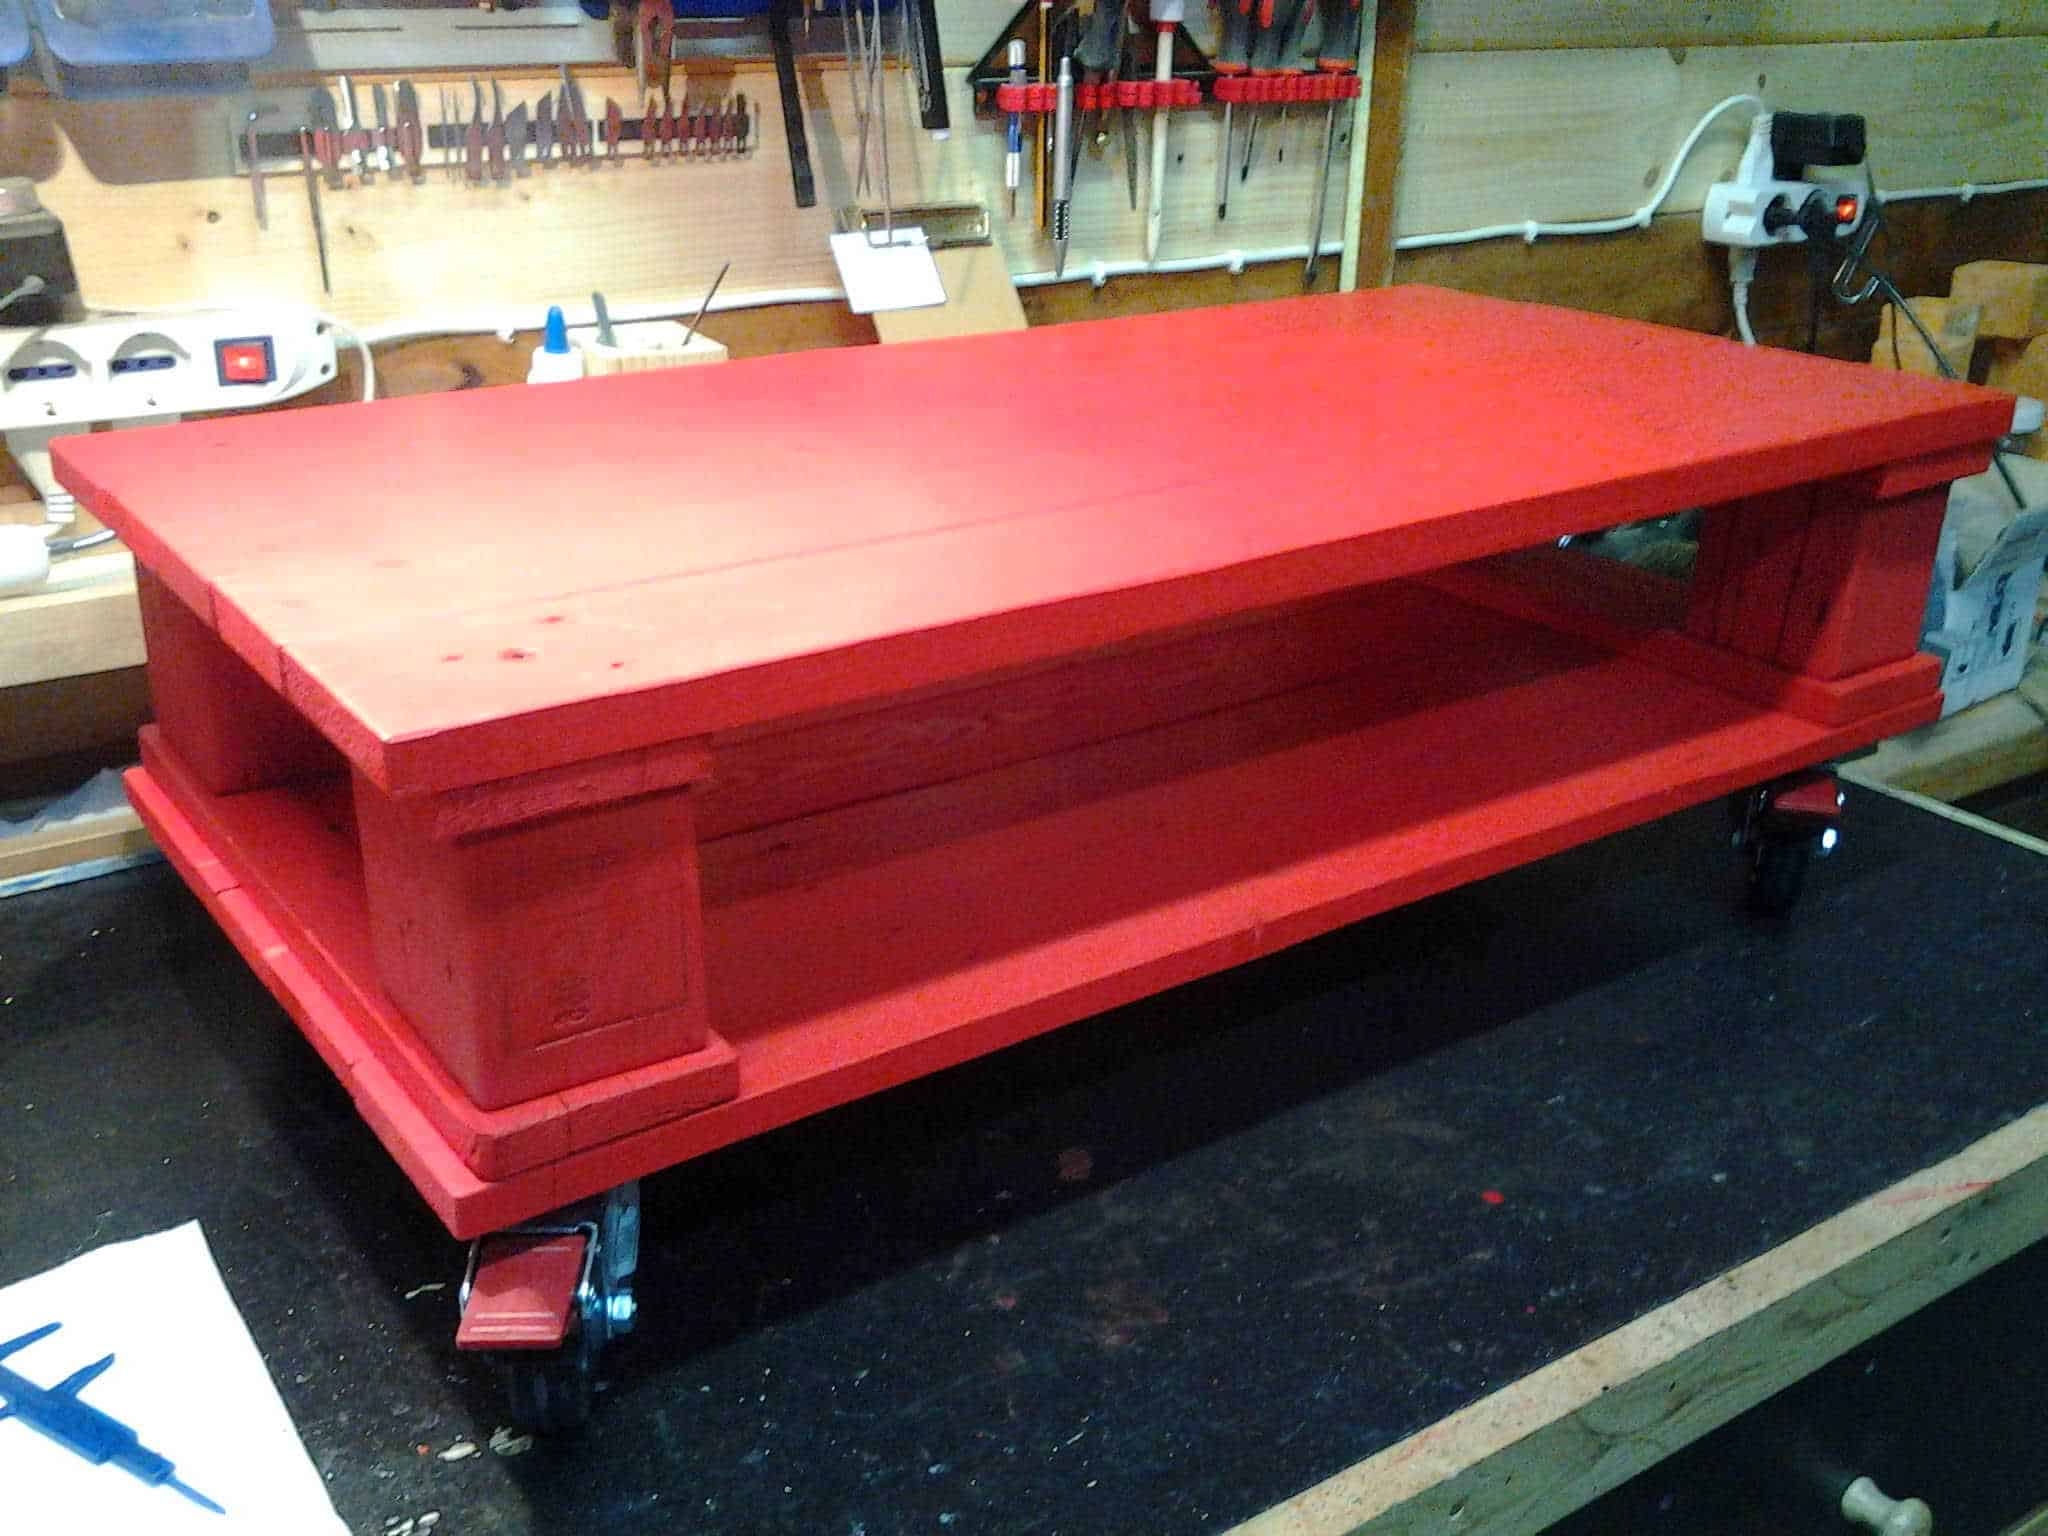 Herran Dining Tables With Favorite Red Pallet Coffee Table • 1001 Pallets (View 20 of 25)